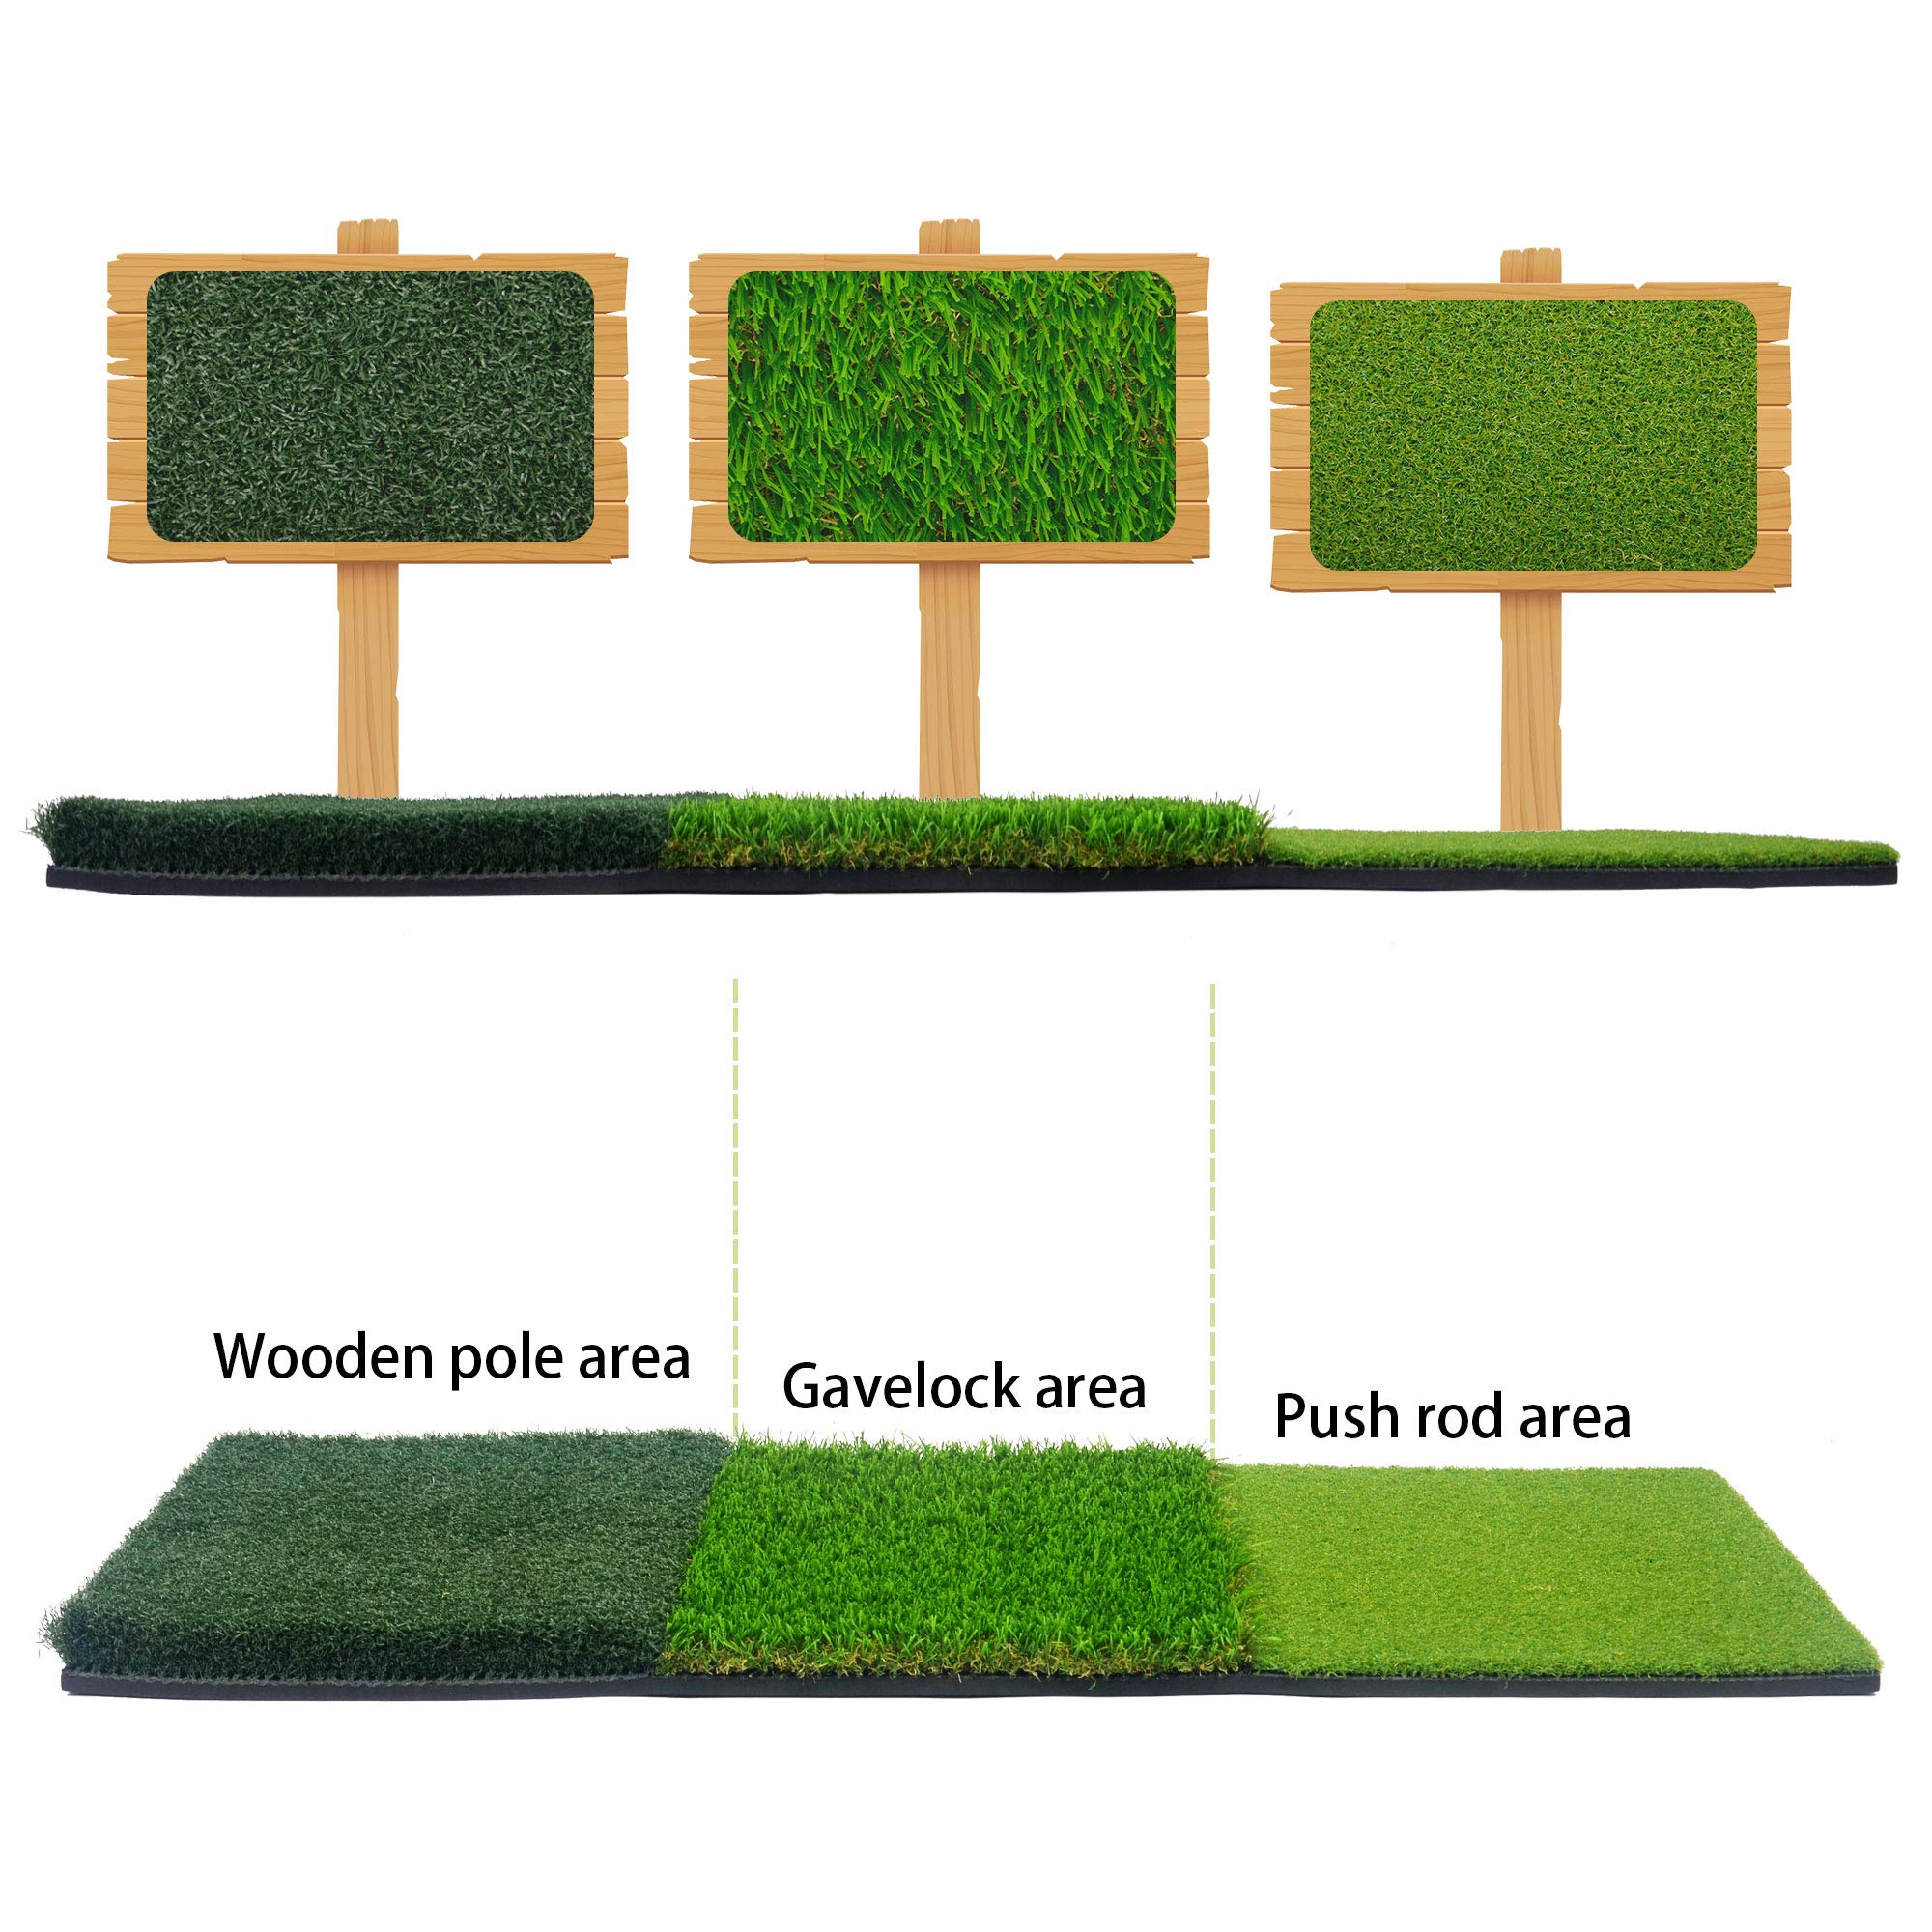 H&B Luxuries Portable 3-in-1 Golf Hitting Mats - Turf Grass Mat 15.94''x35.35'' for Backyard Practice GFHMT32 by H&B Luxuries